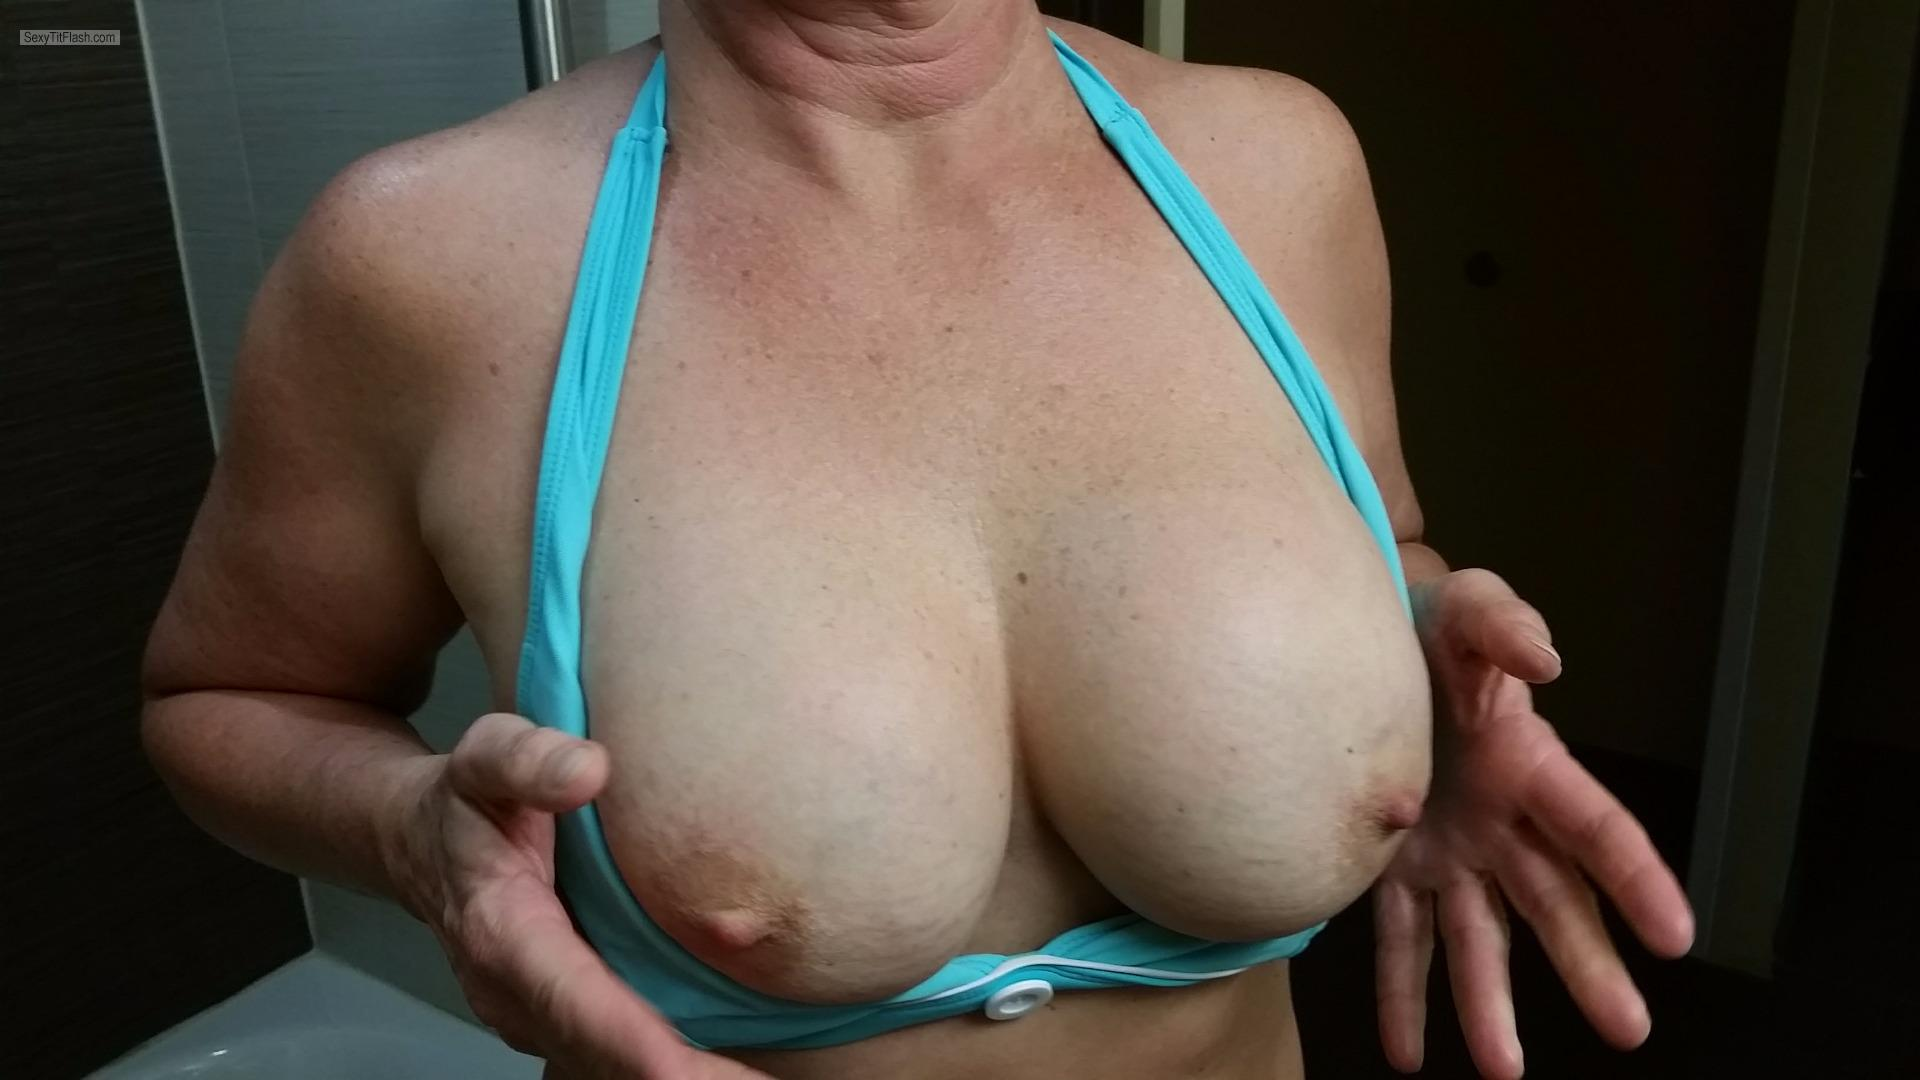 Big Tits Of My Wife Cubmistress